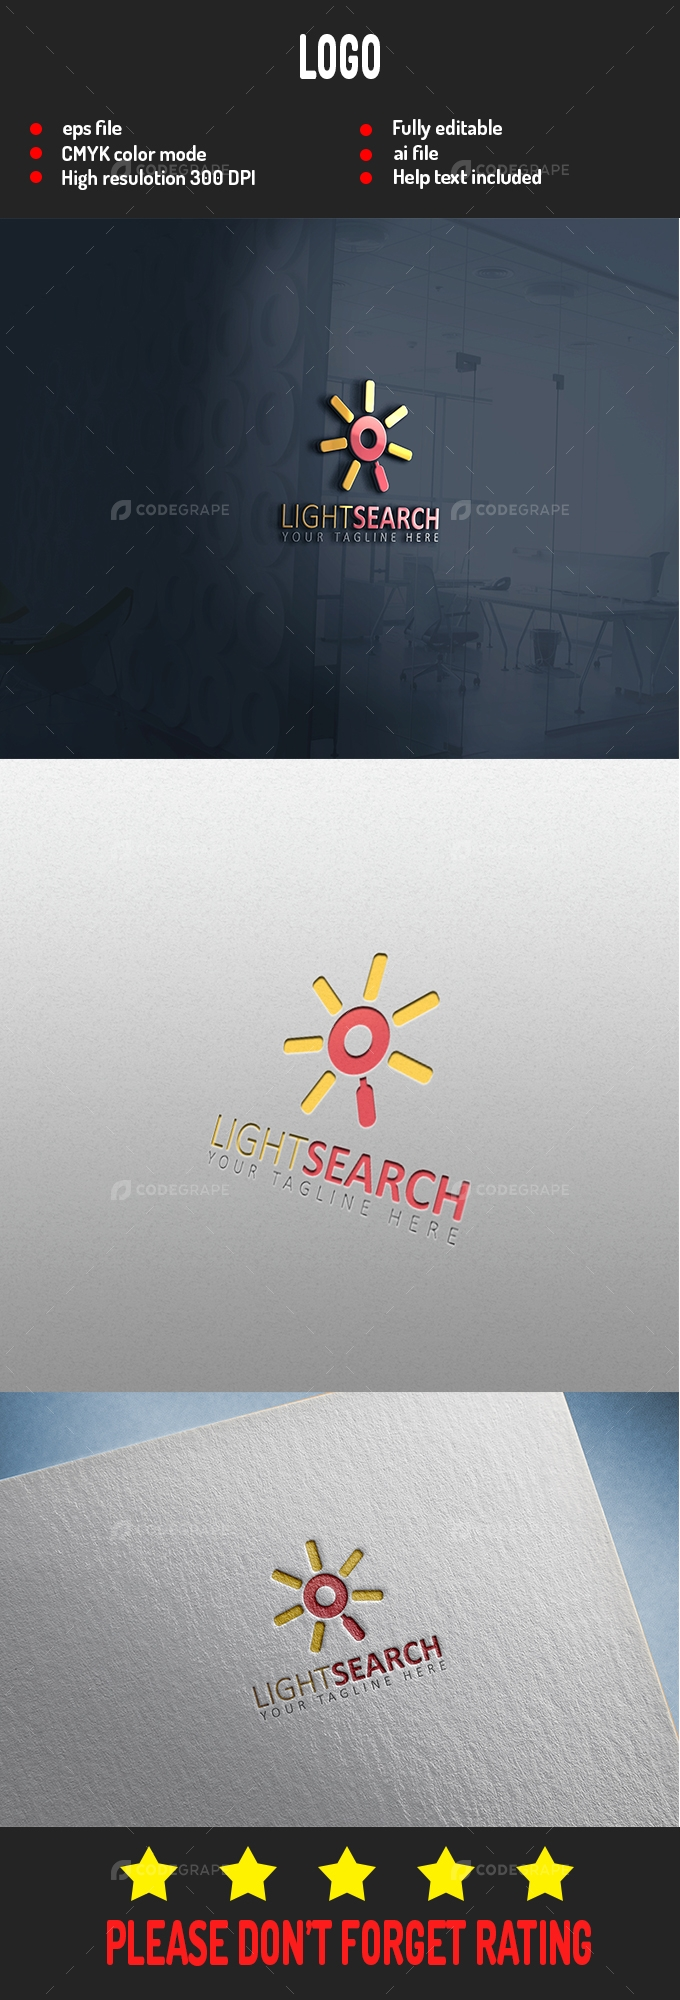 Light Search logo